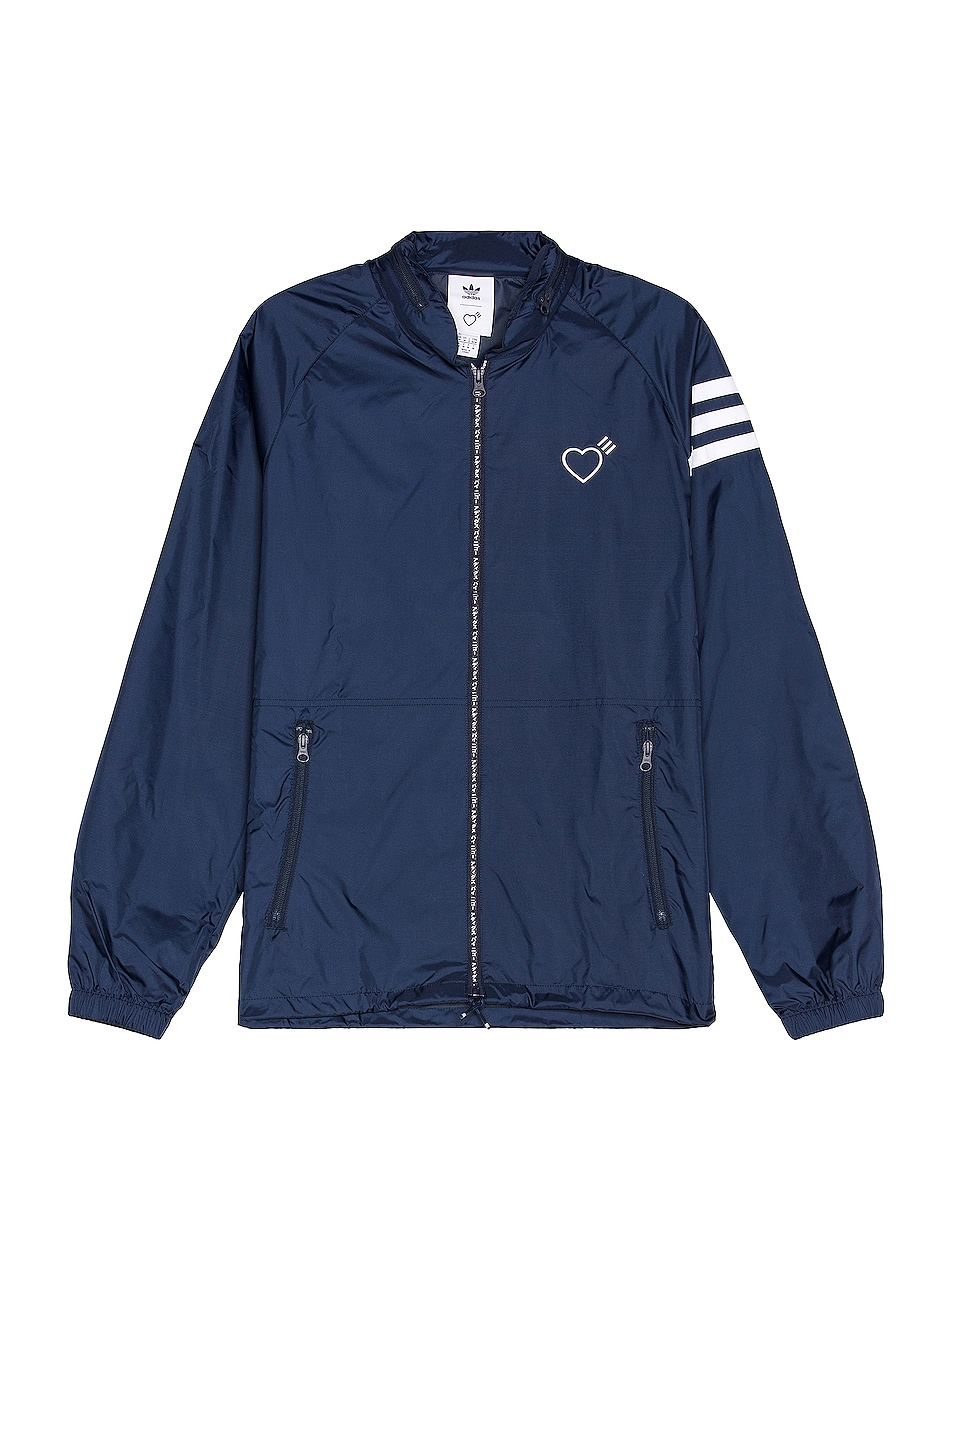 Image 1 of adidas x HUMAN MADE Windbreaker in Collegiate Navy